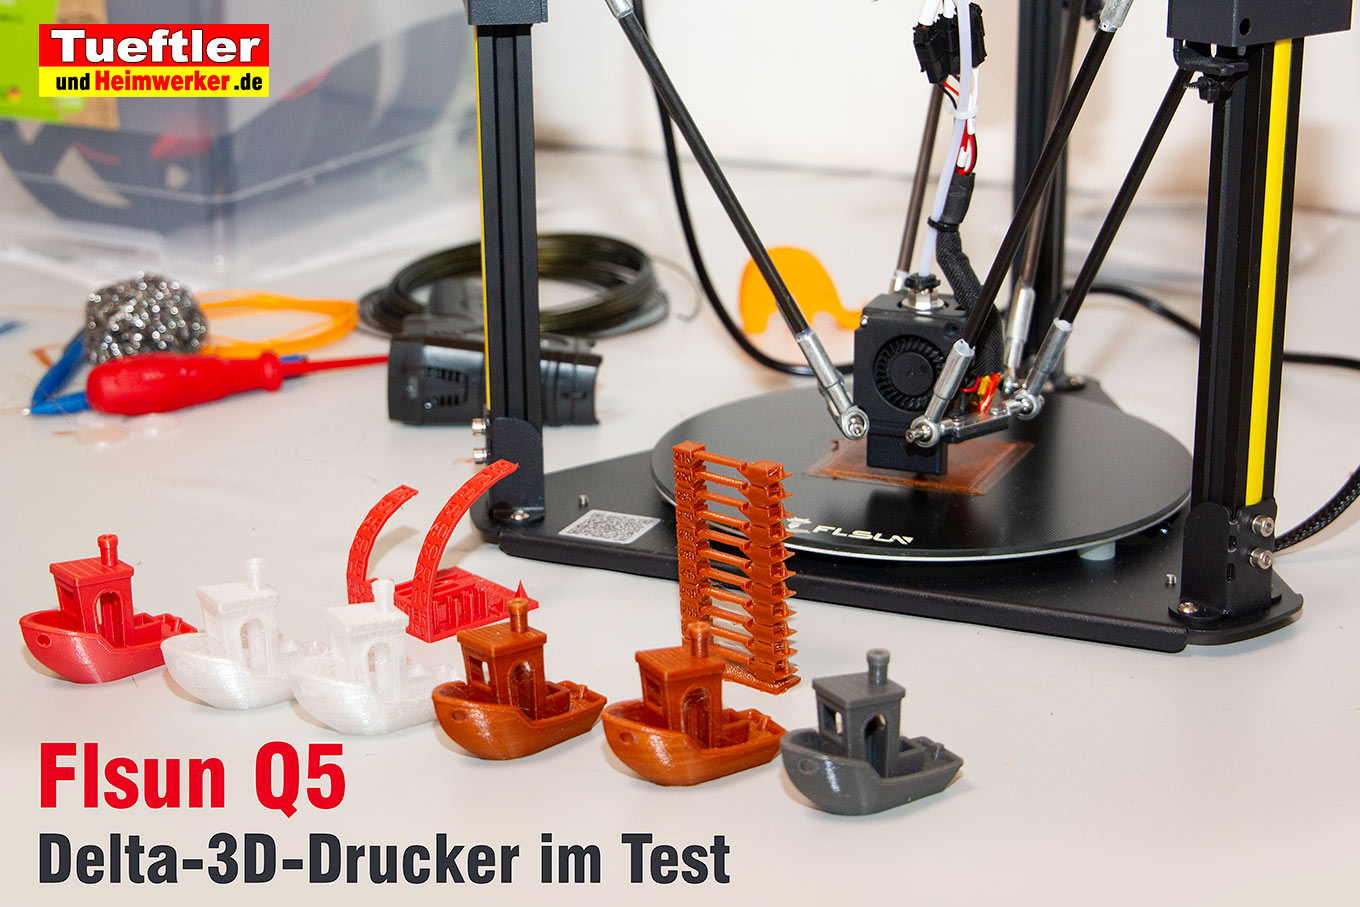 Flsun-Q5-Delta-3D-Drucker-Test-Vergleich-Titel.jpg